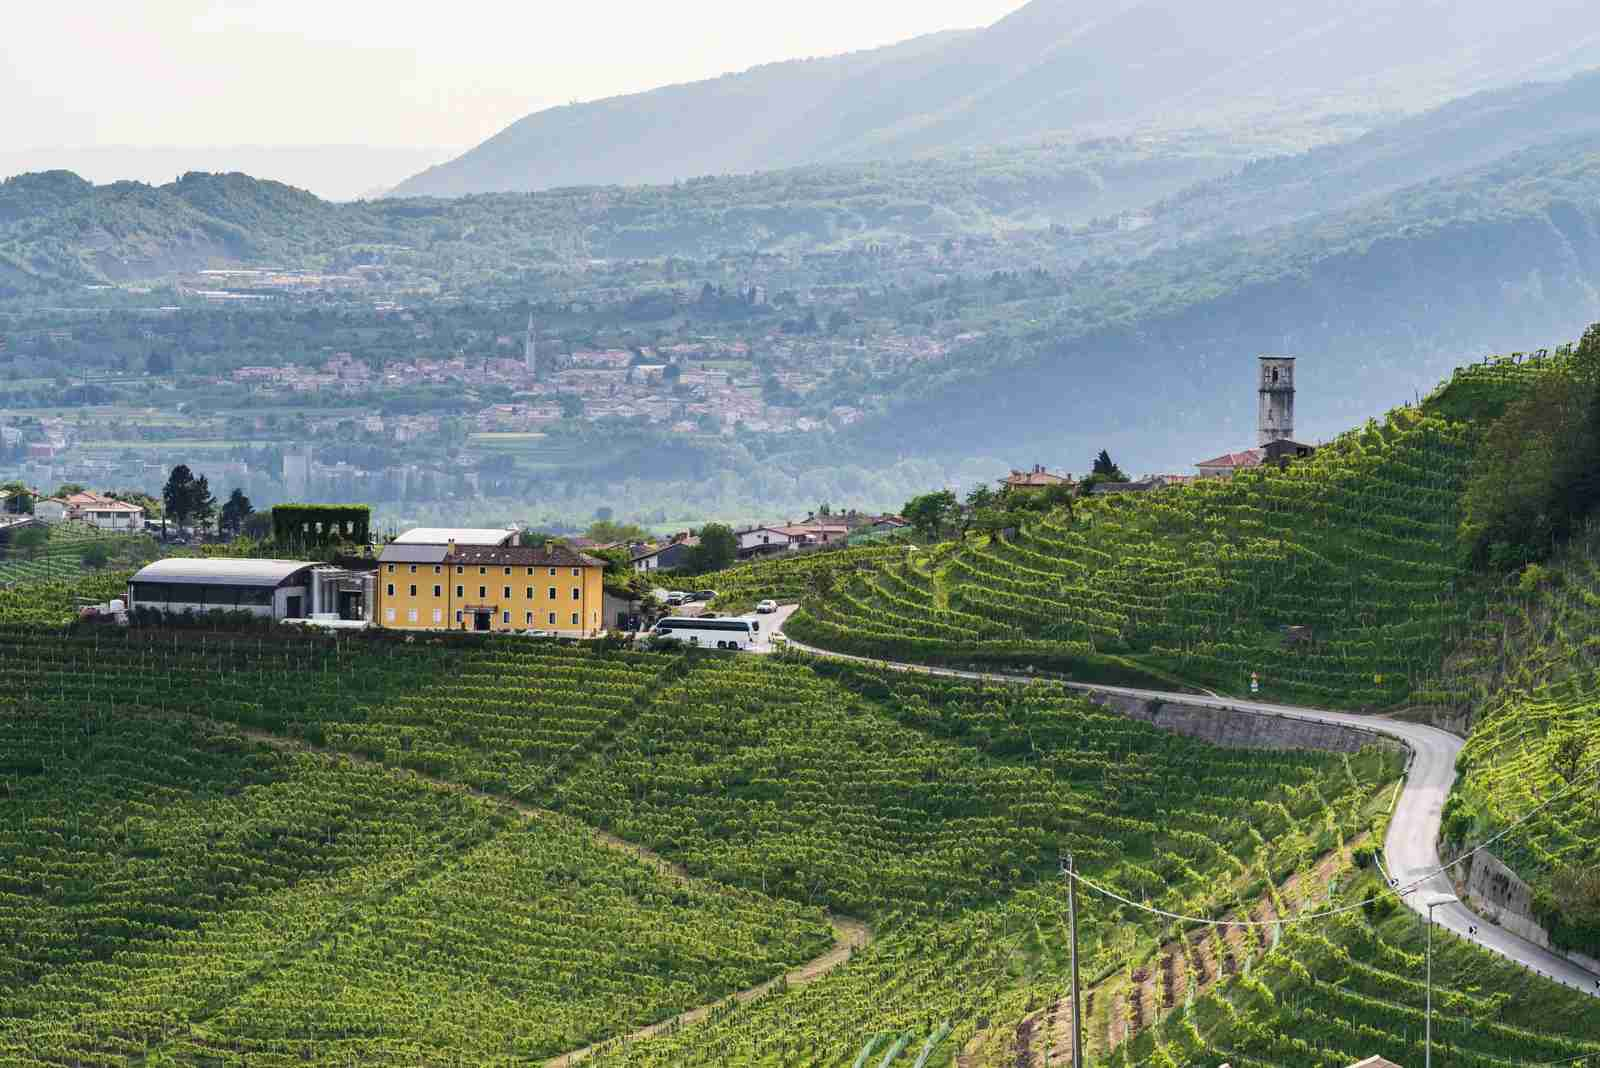 The Santo Stefano di Valdobbiadene vineyard in the Prosecco Hills. (Photo by GitoTrevisan/Getty Images)